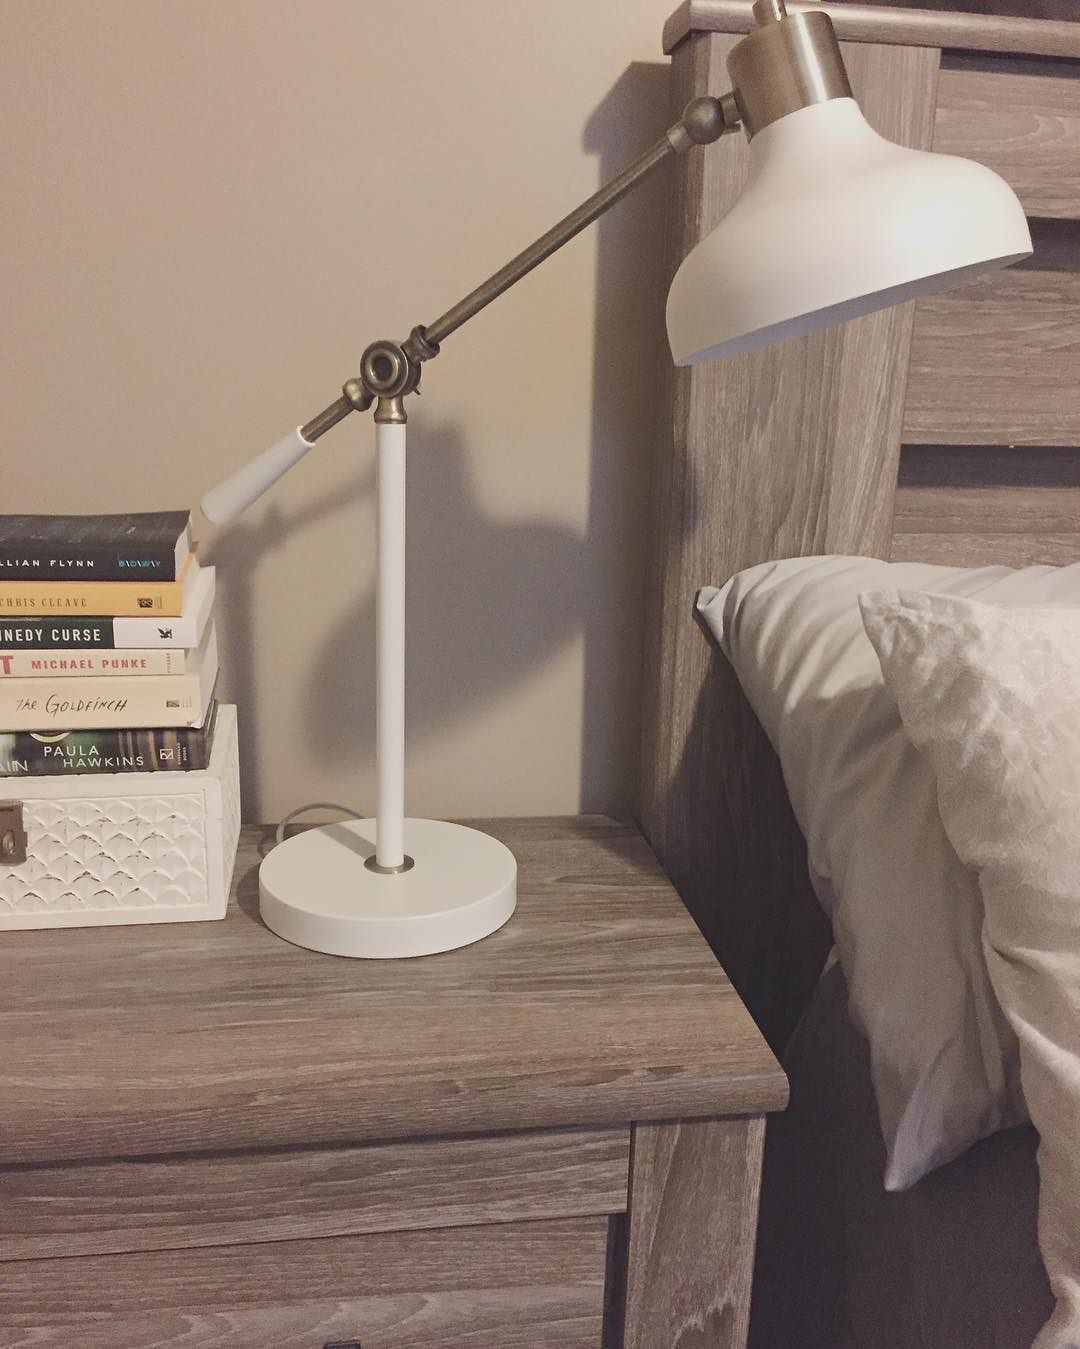 Crosby Schoolhouse Desk Lamp - White - Threshold | Pictures, Lamps ...